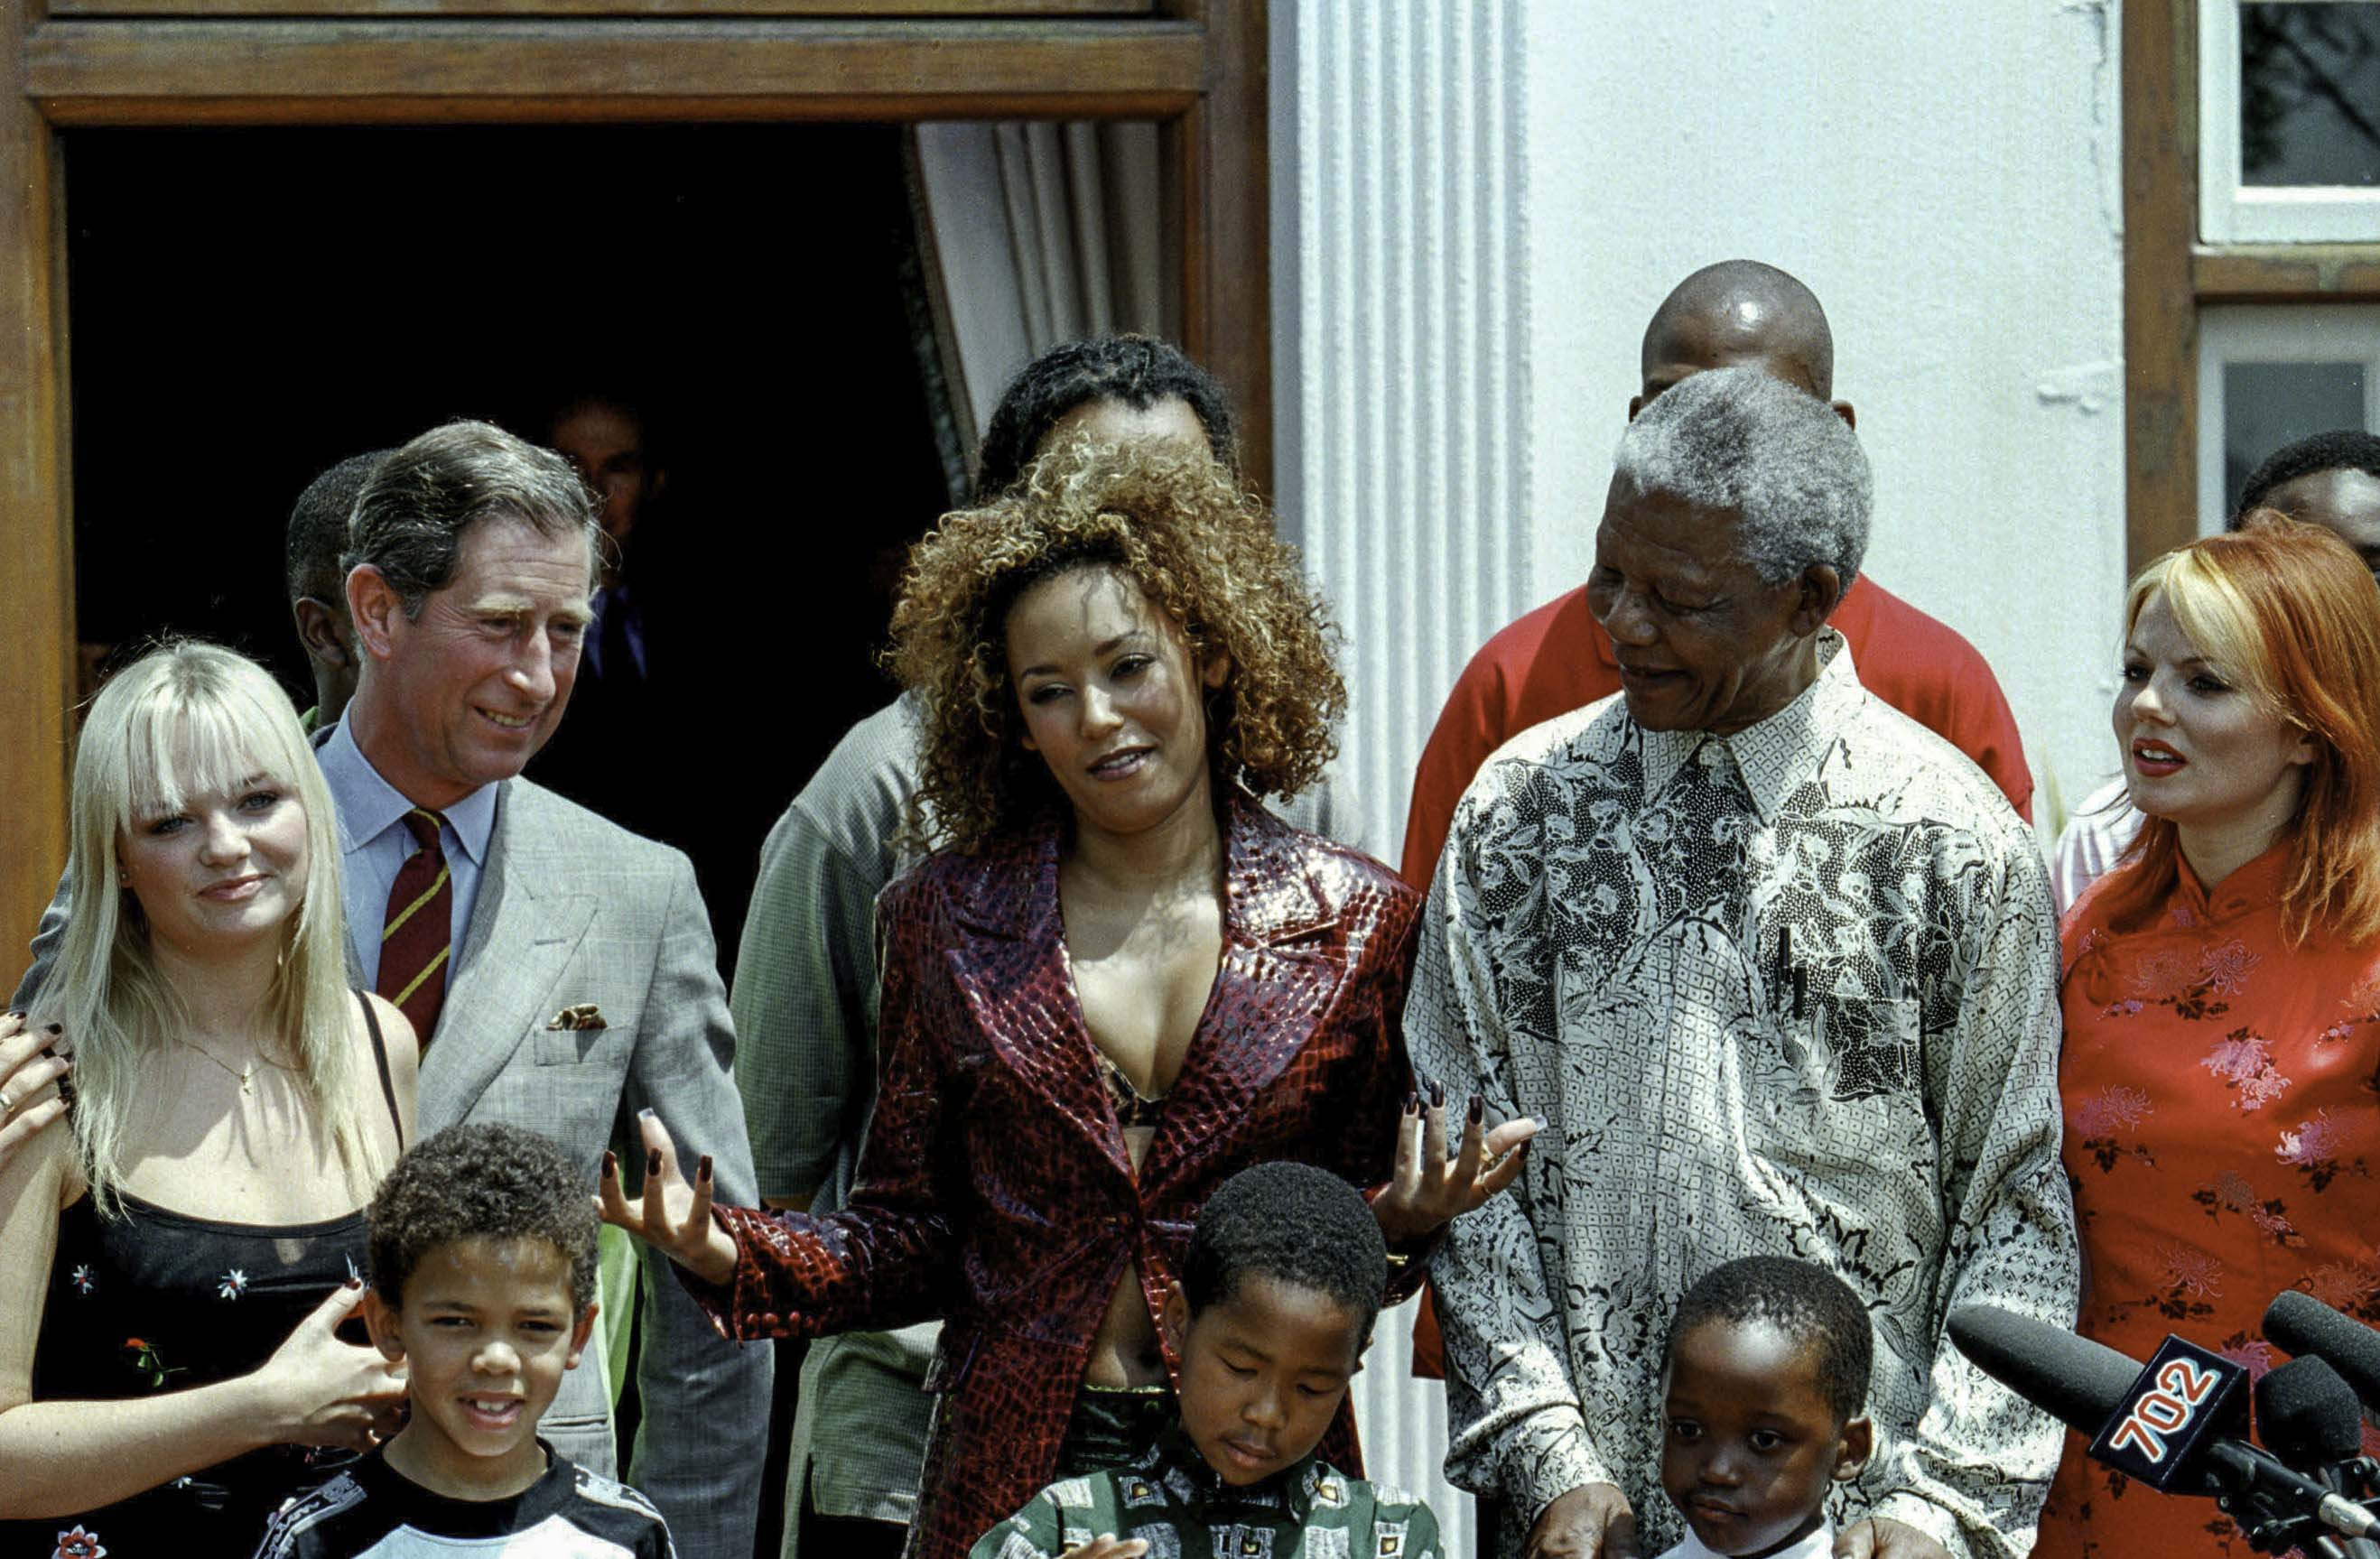 971114SH28:SAFRICA:ROYALS:WOMEN:PEOPLE:MUSIC:ENTERTAINMENT:NOV97 - Prince Tour to South Africa, Prince Charles & President Mandela meeting  Spice girls at Mandela 's house at Pretoria  (Photo by Shaun Harris / www.afrikamoves.co.za) HORIZONTAL MADIBA KIDS GINGER